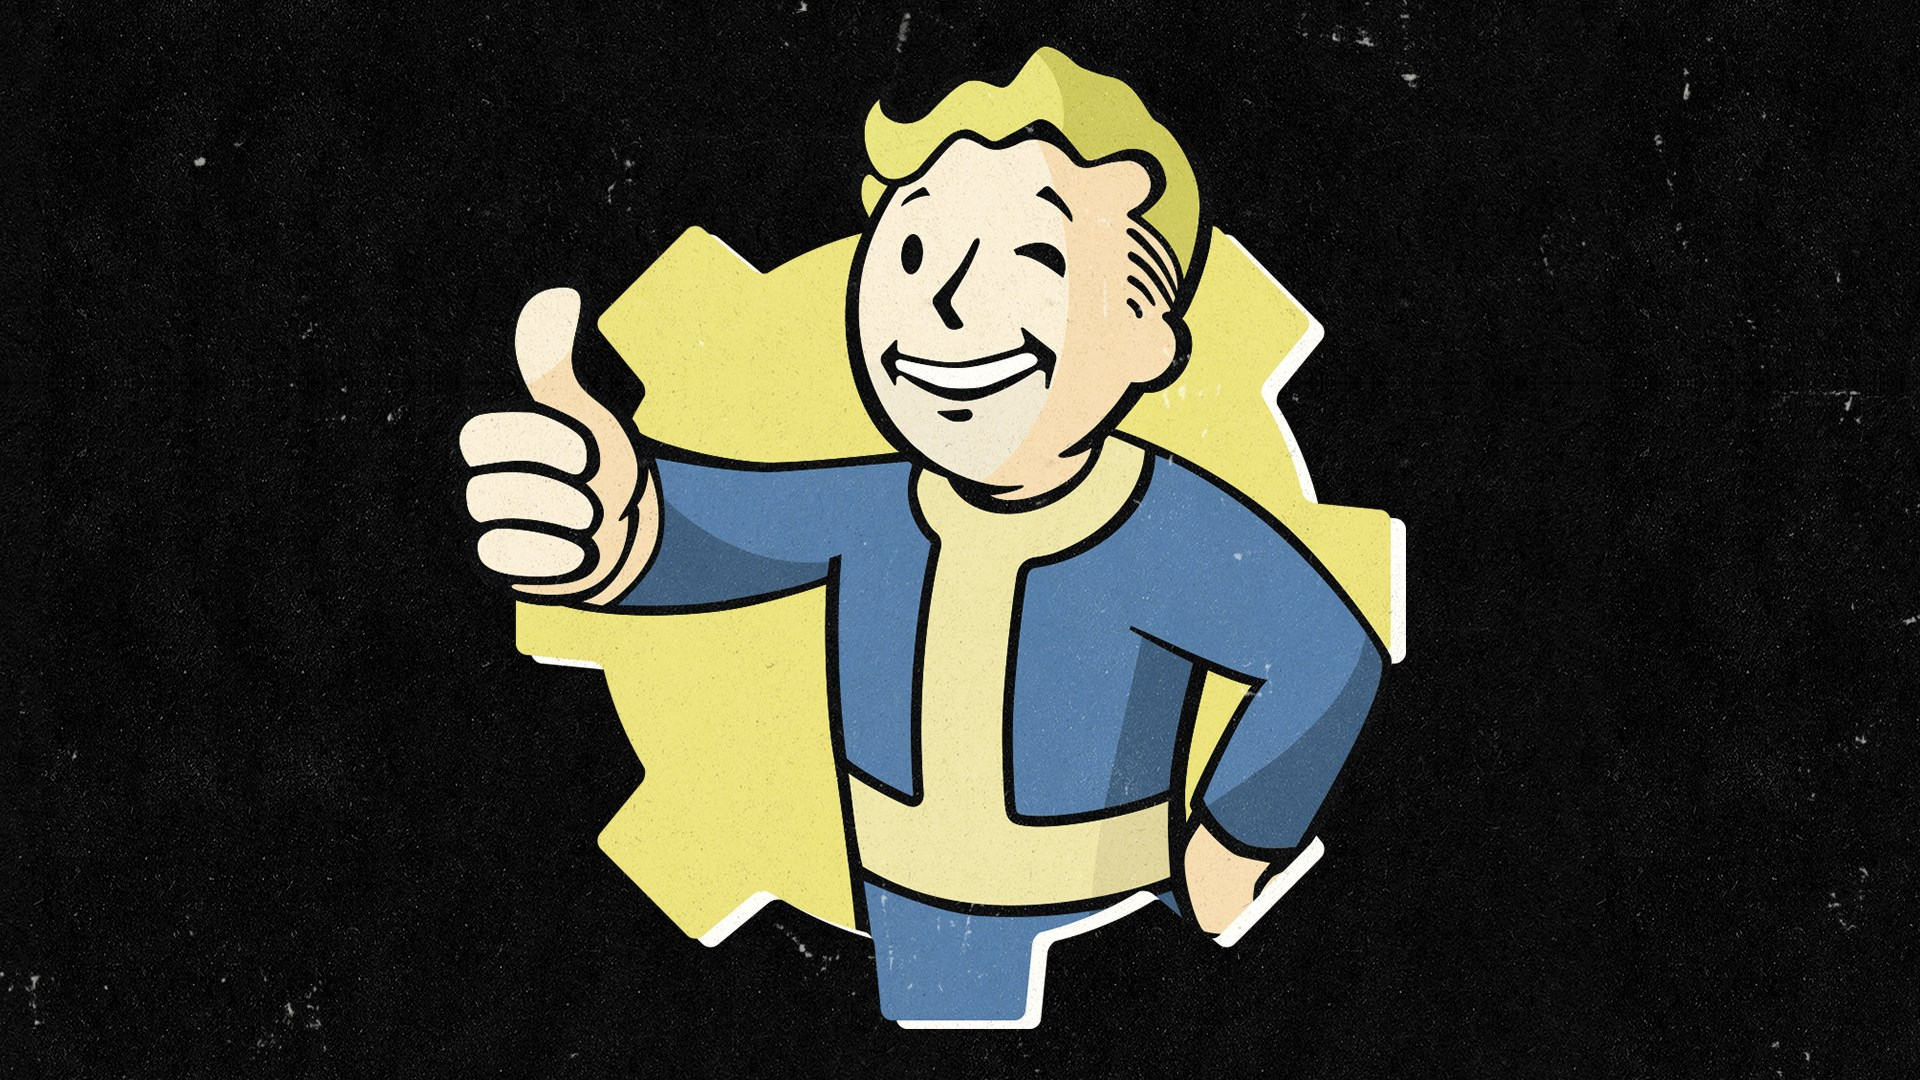 Buy Fallout 4: Game of the Year Edition - Microsoft Store en-GB